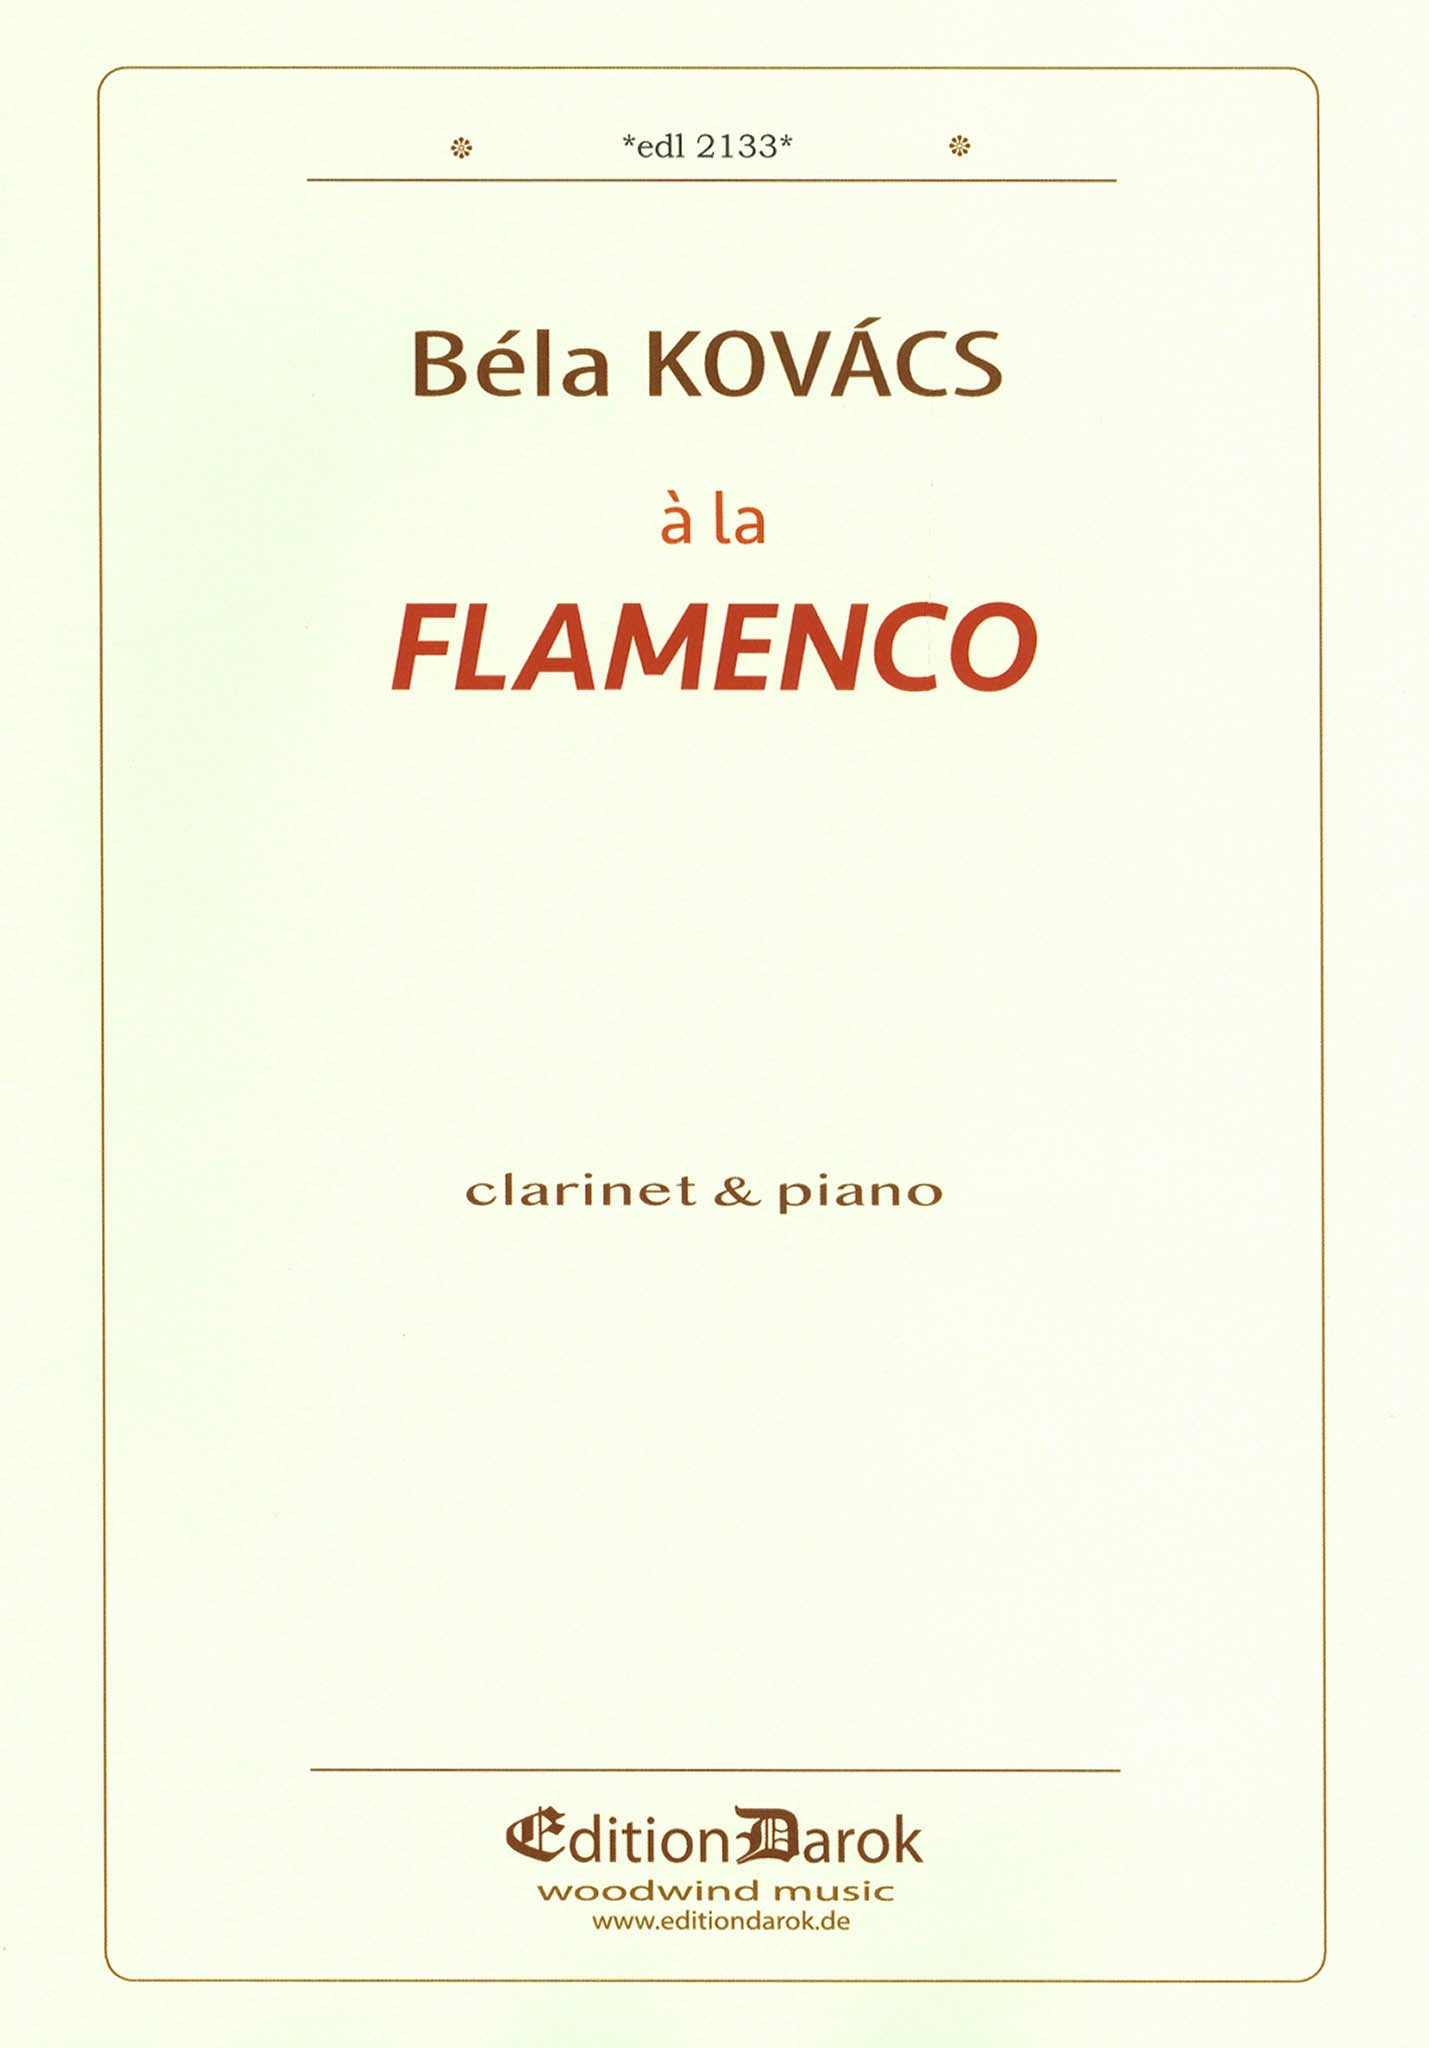 Kovács à la Flamenco Cover